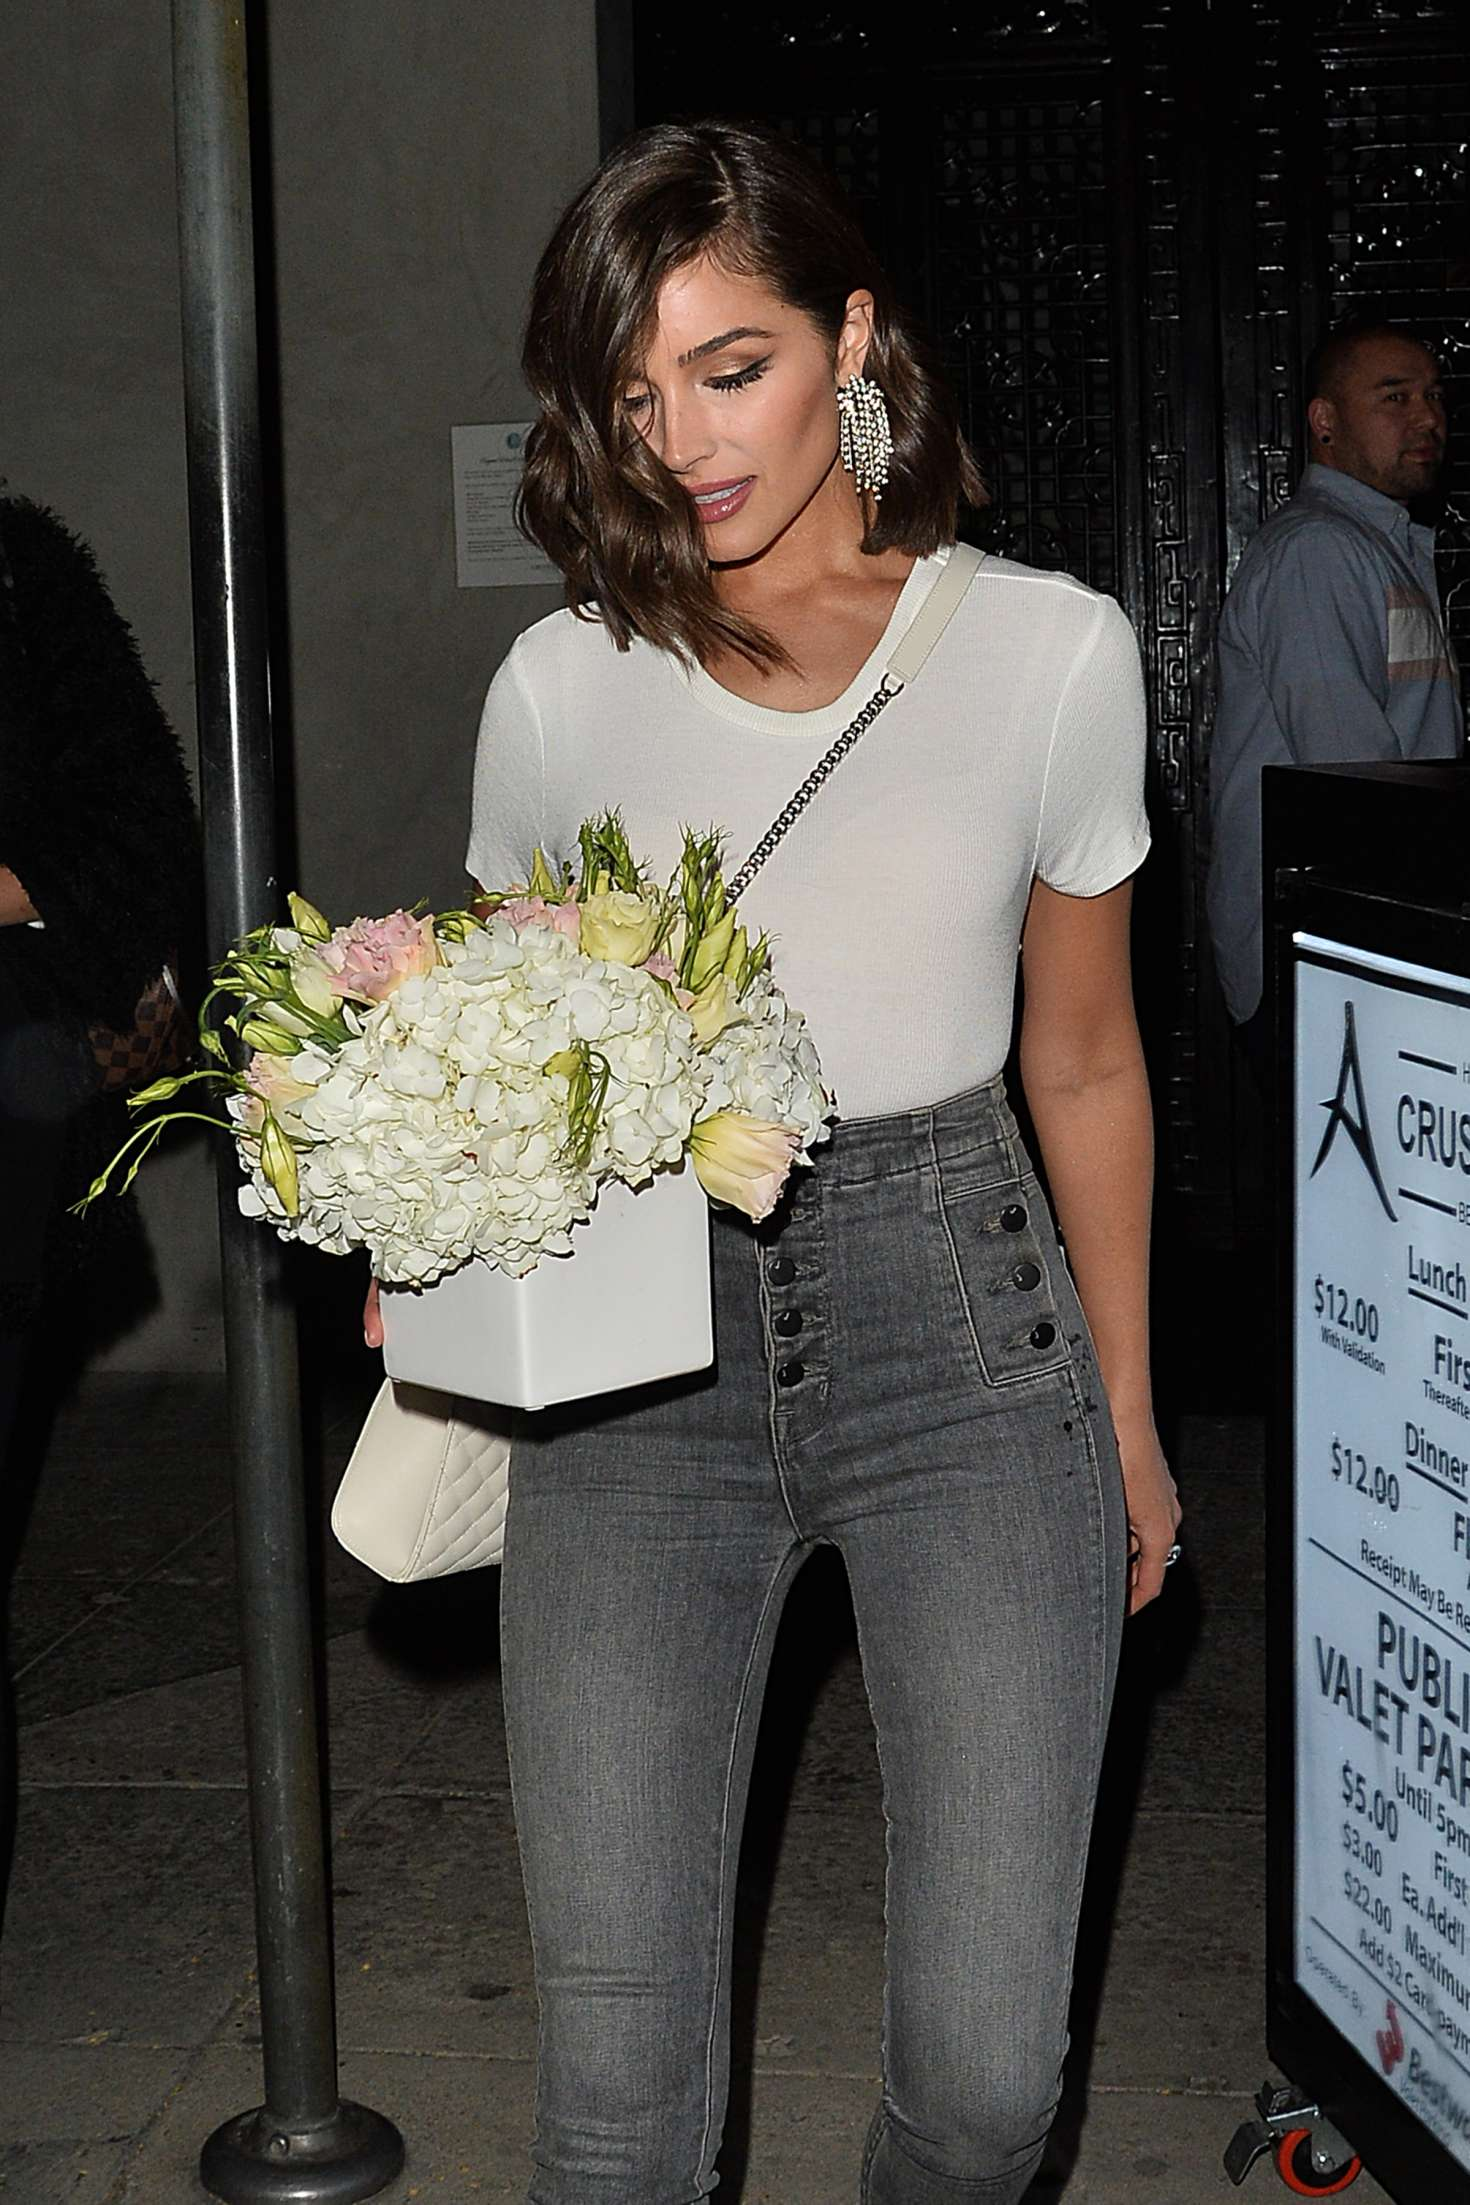 Olivia Culpo – Leaving 'Crustacean' Restaurant in Beverly Hills